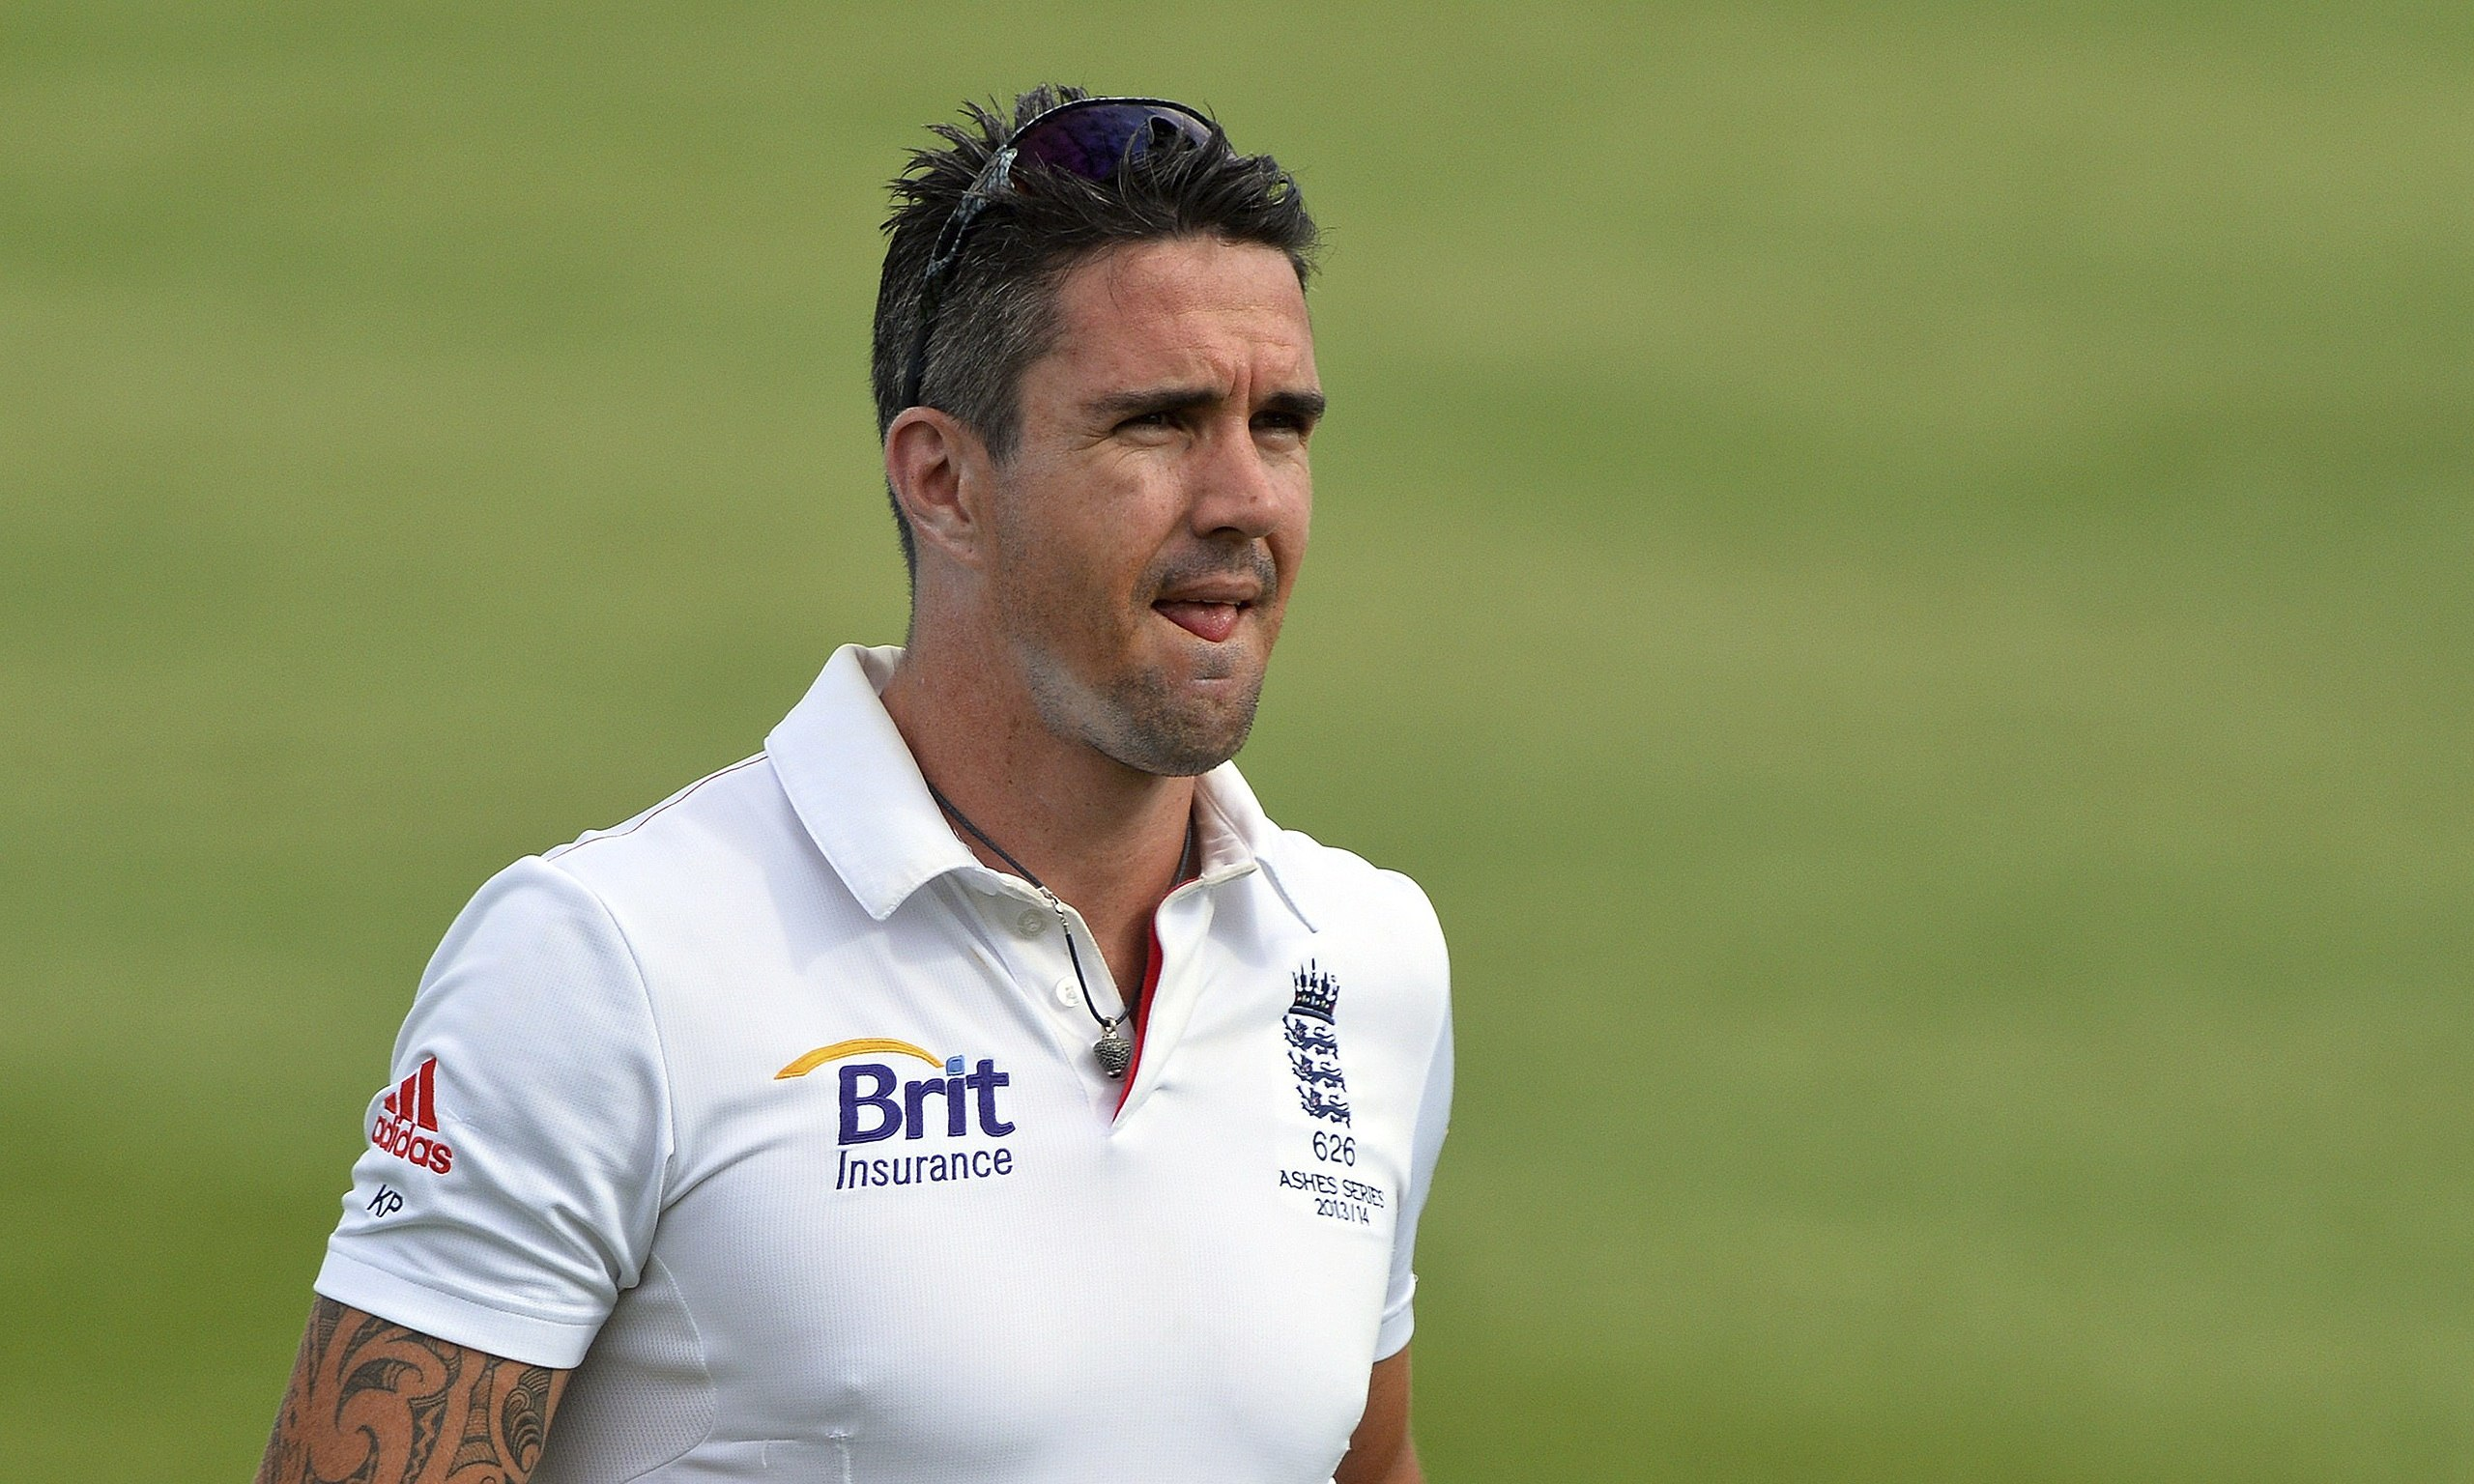 kevin pietersen - photo #33